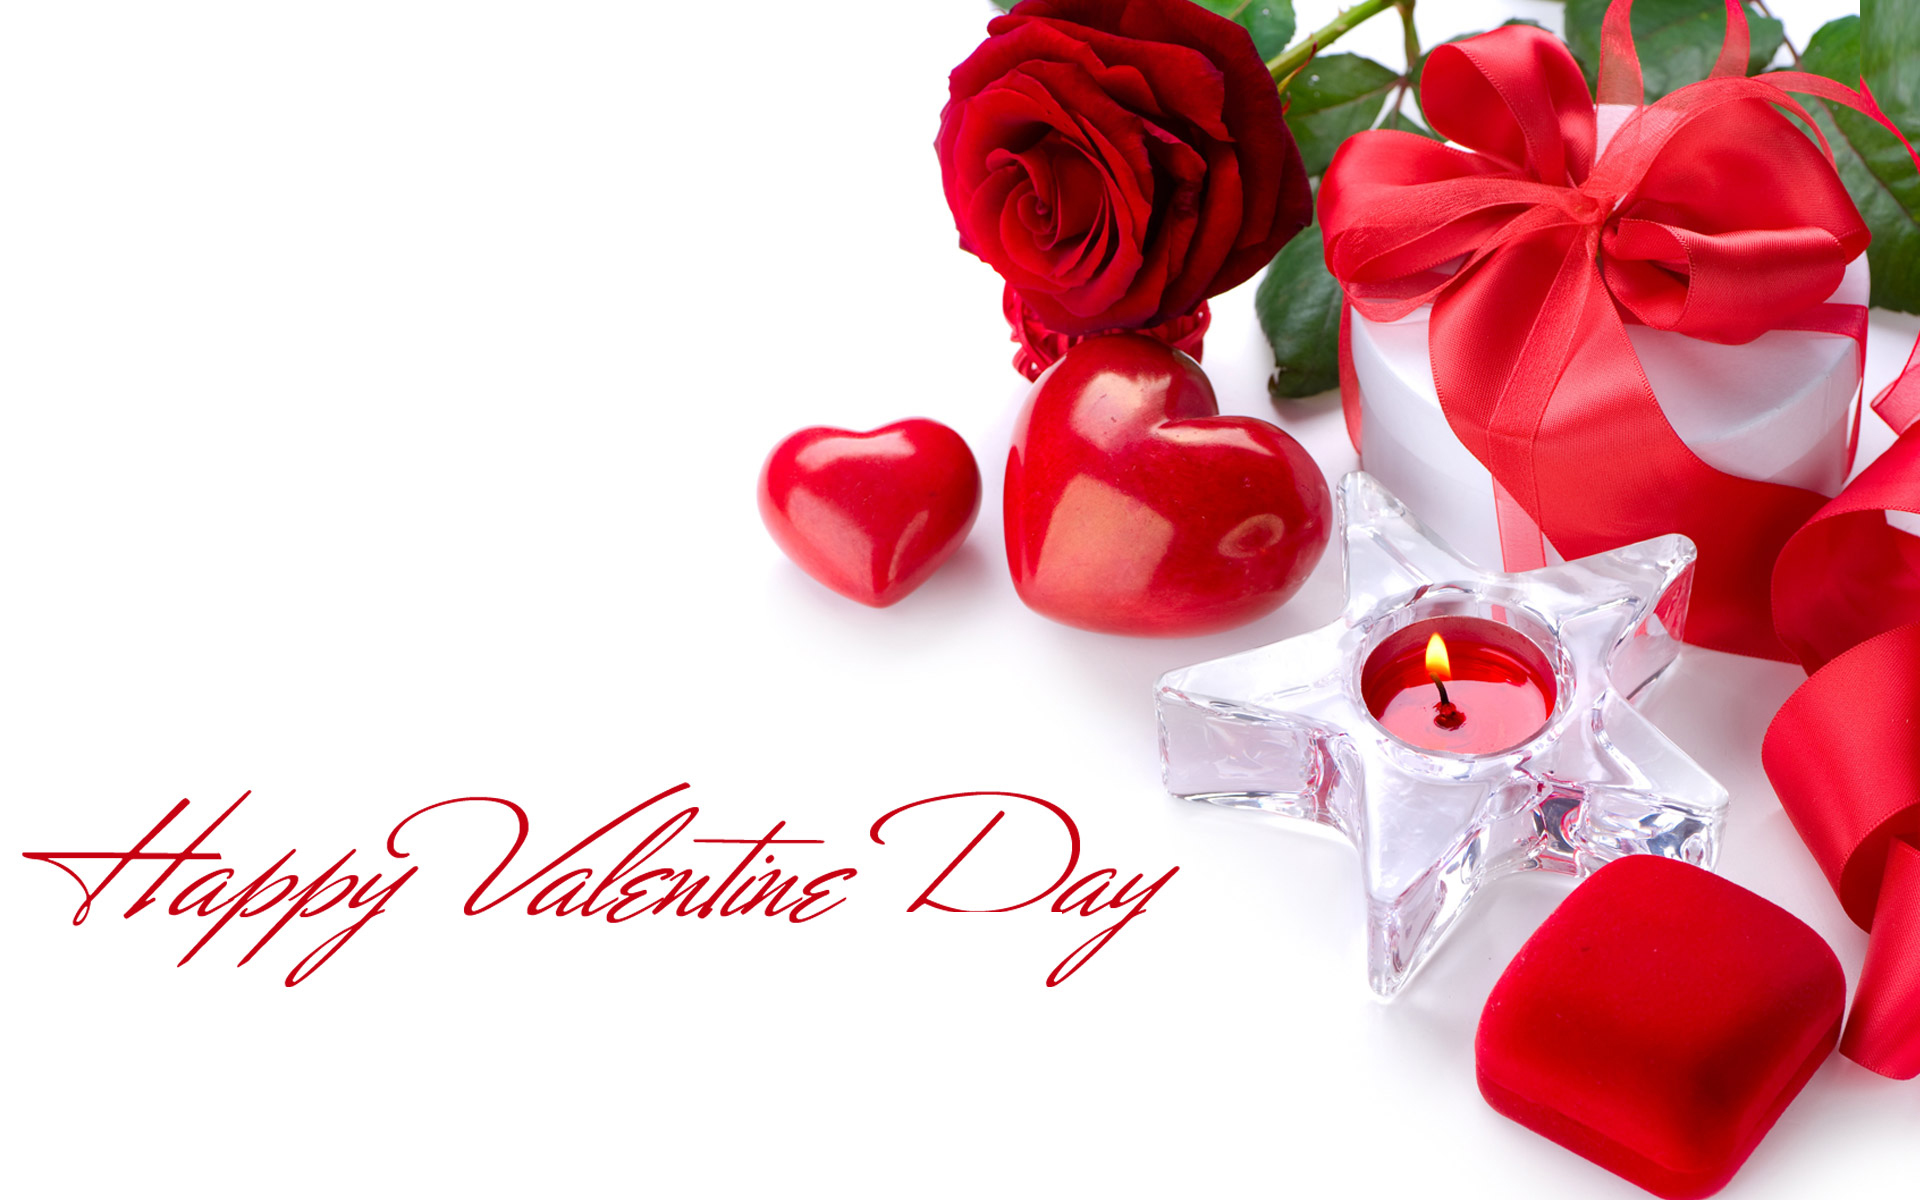 Happy Valentine's Day Wishes, Messages and Greetings